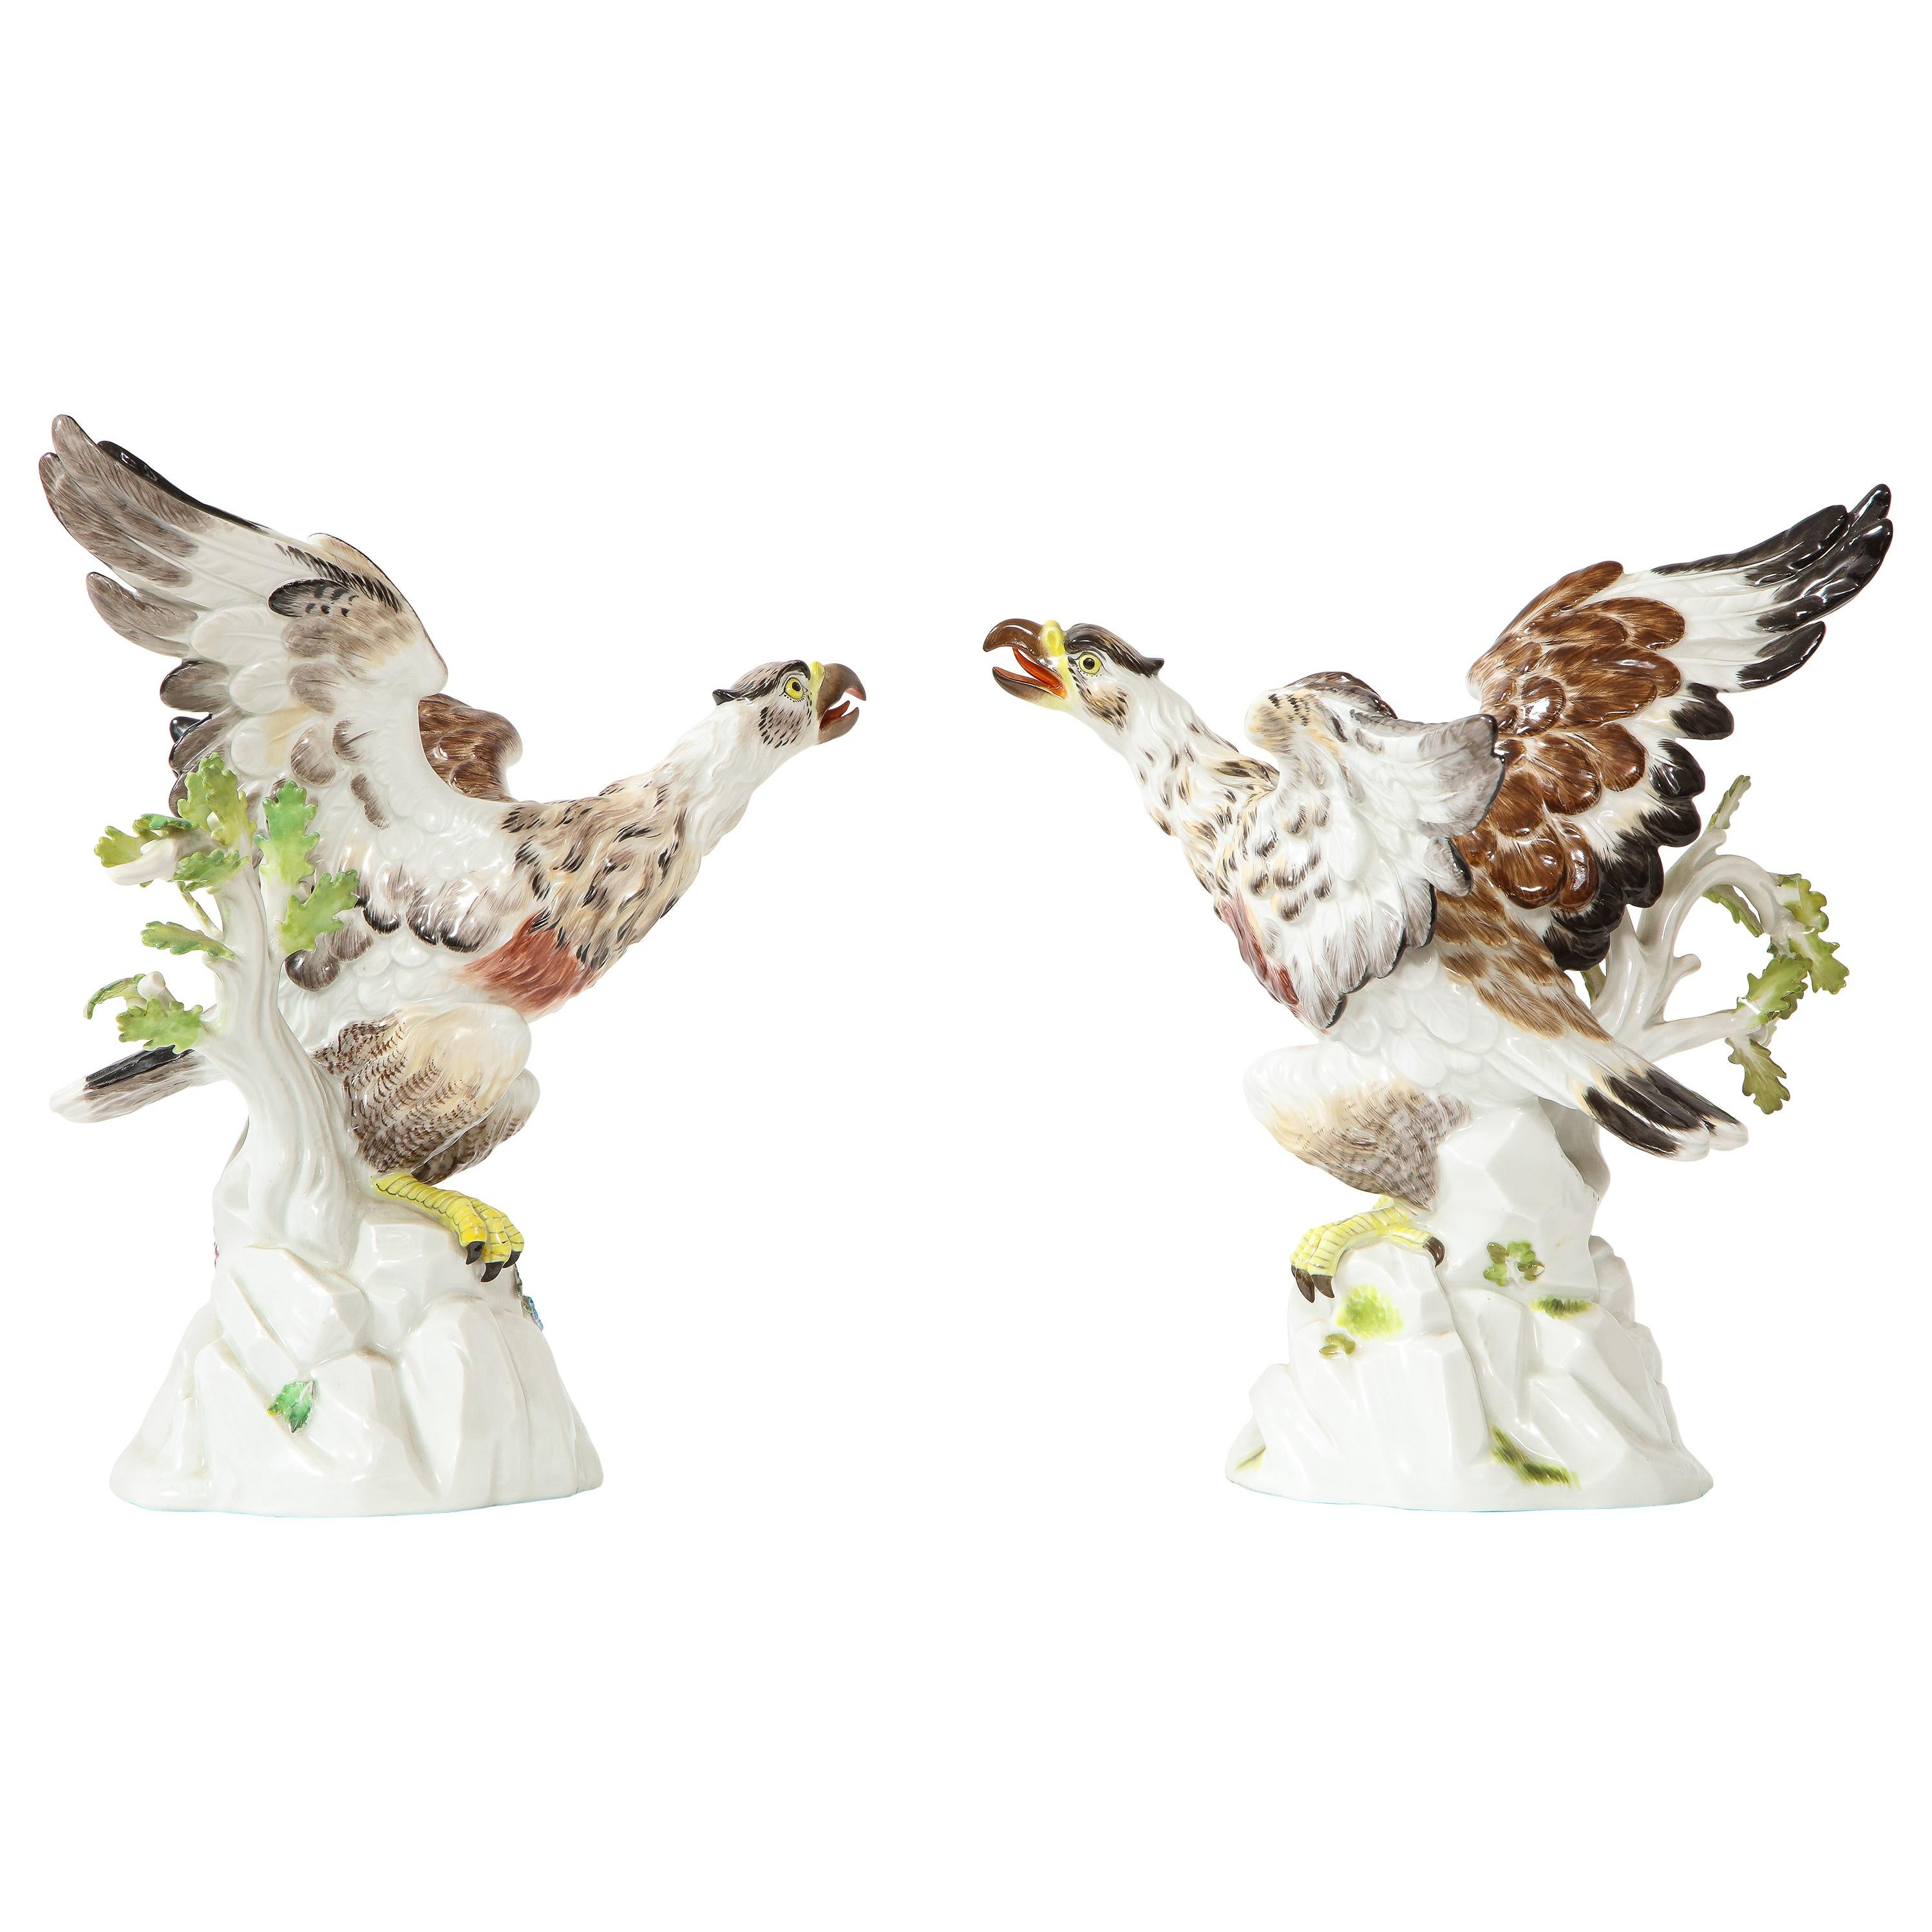 Fine Pair of Meissen Porcelain Models of Eagles Resting on Branches